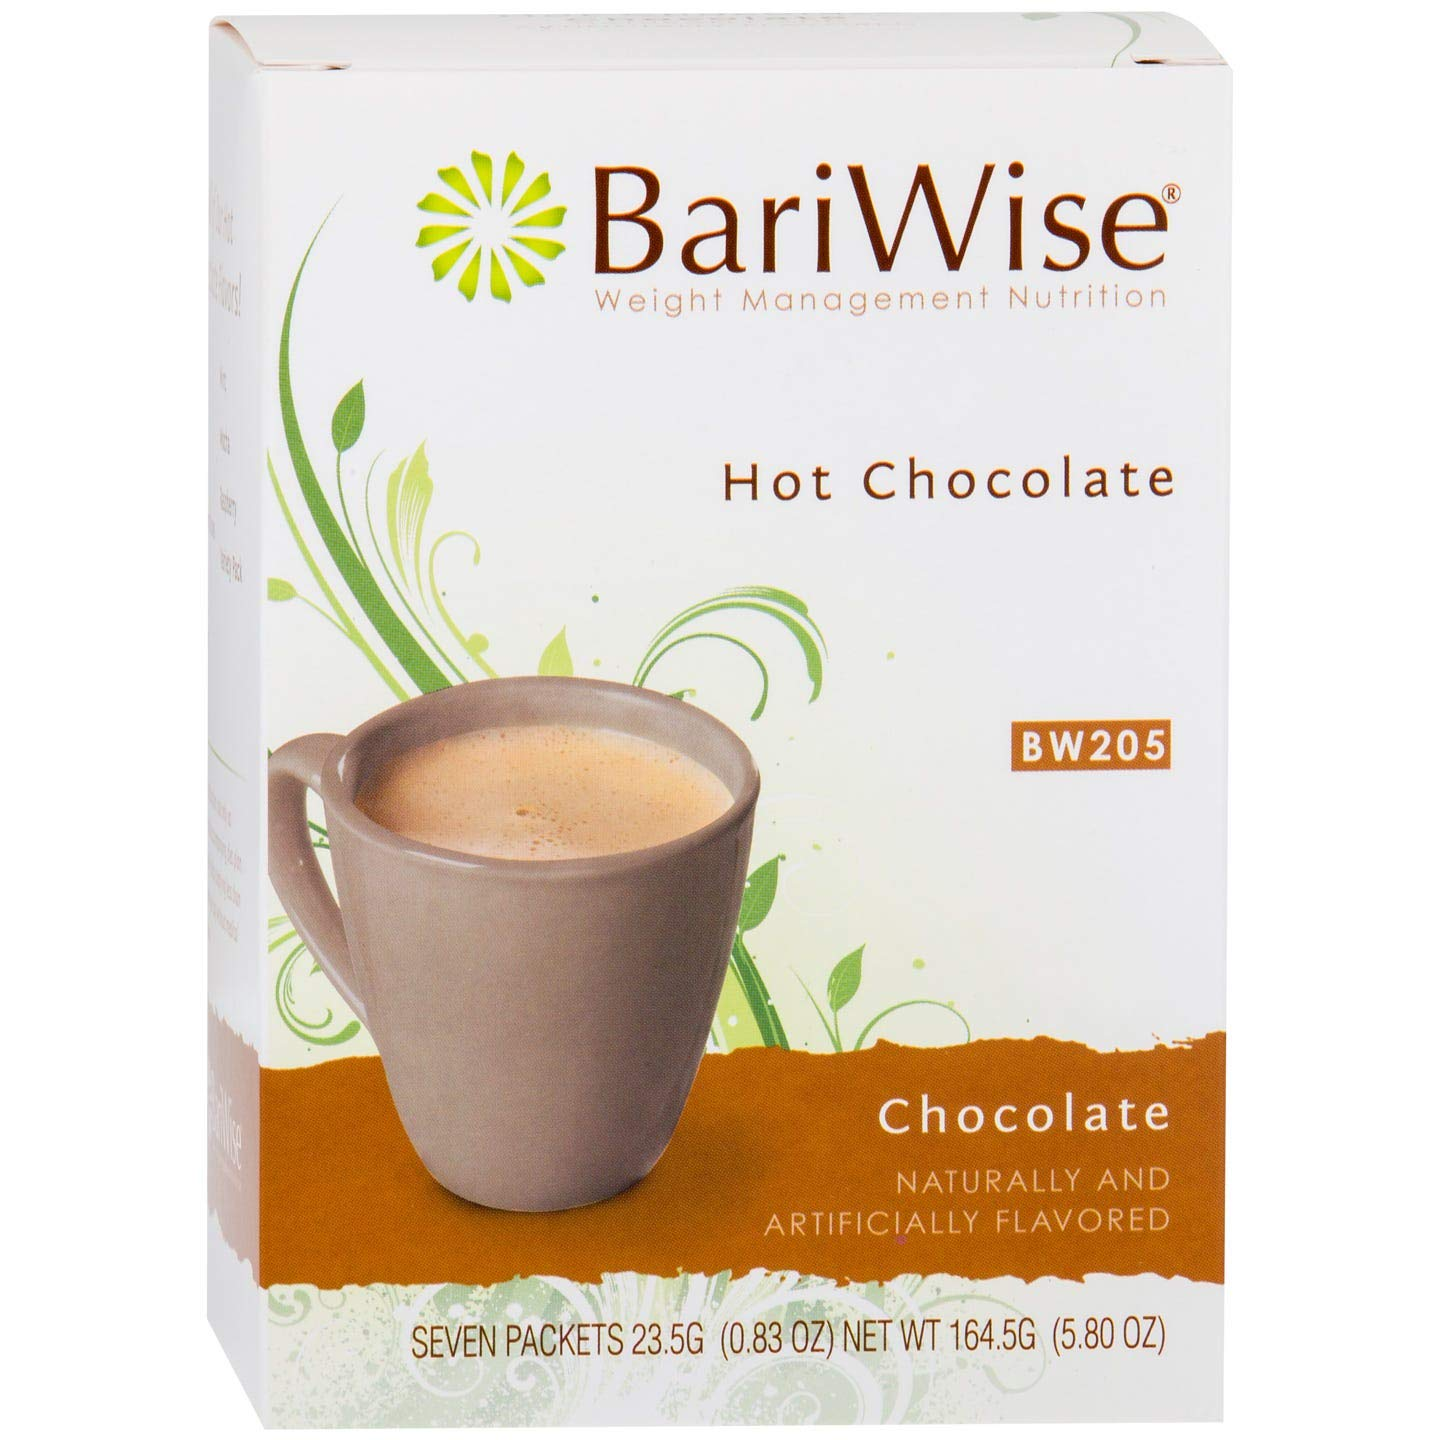 BariWise High Protein Hot Cocoa - Instant Low-Carb, Low Calorie Hot Chocolate Mix with 15g Protein - Chocolate (7 Count)                BariWise Low-Carb High Protein Oatmeal / Instant Diet Hot Oatmeals - Maple & Brown Sugar (7 Servings/Box) - Low Carb, Low Calorie, Low Fat, Aspartame Free                Premier Protein Clear Drink, Tropical Punch, 20g Protein, 0g Sugar, 1g Carb, 90 calories, Keto Friendly, Gluten Free, No Soy Ingredients 16.9 fl oz, 12 Pack                BariWise High Protein Shake / Low-Carb Diet Pudding & Shake Mix - Vanilla (7 Servings/Box) - Gluten Free, Low Fat, Low Carb